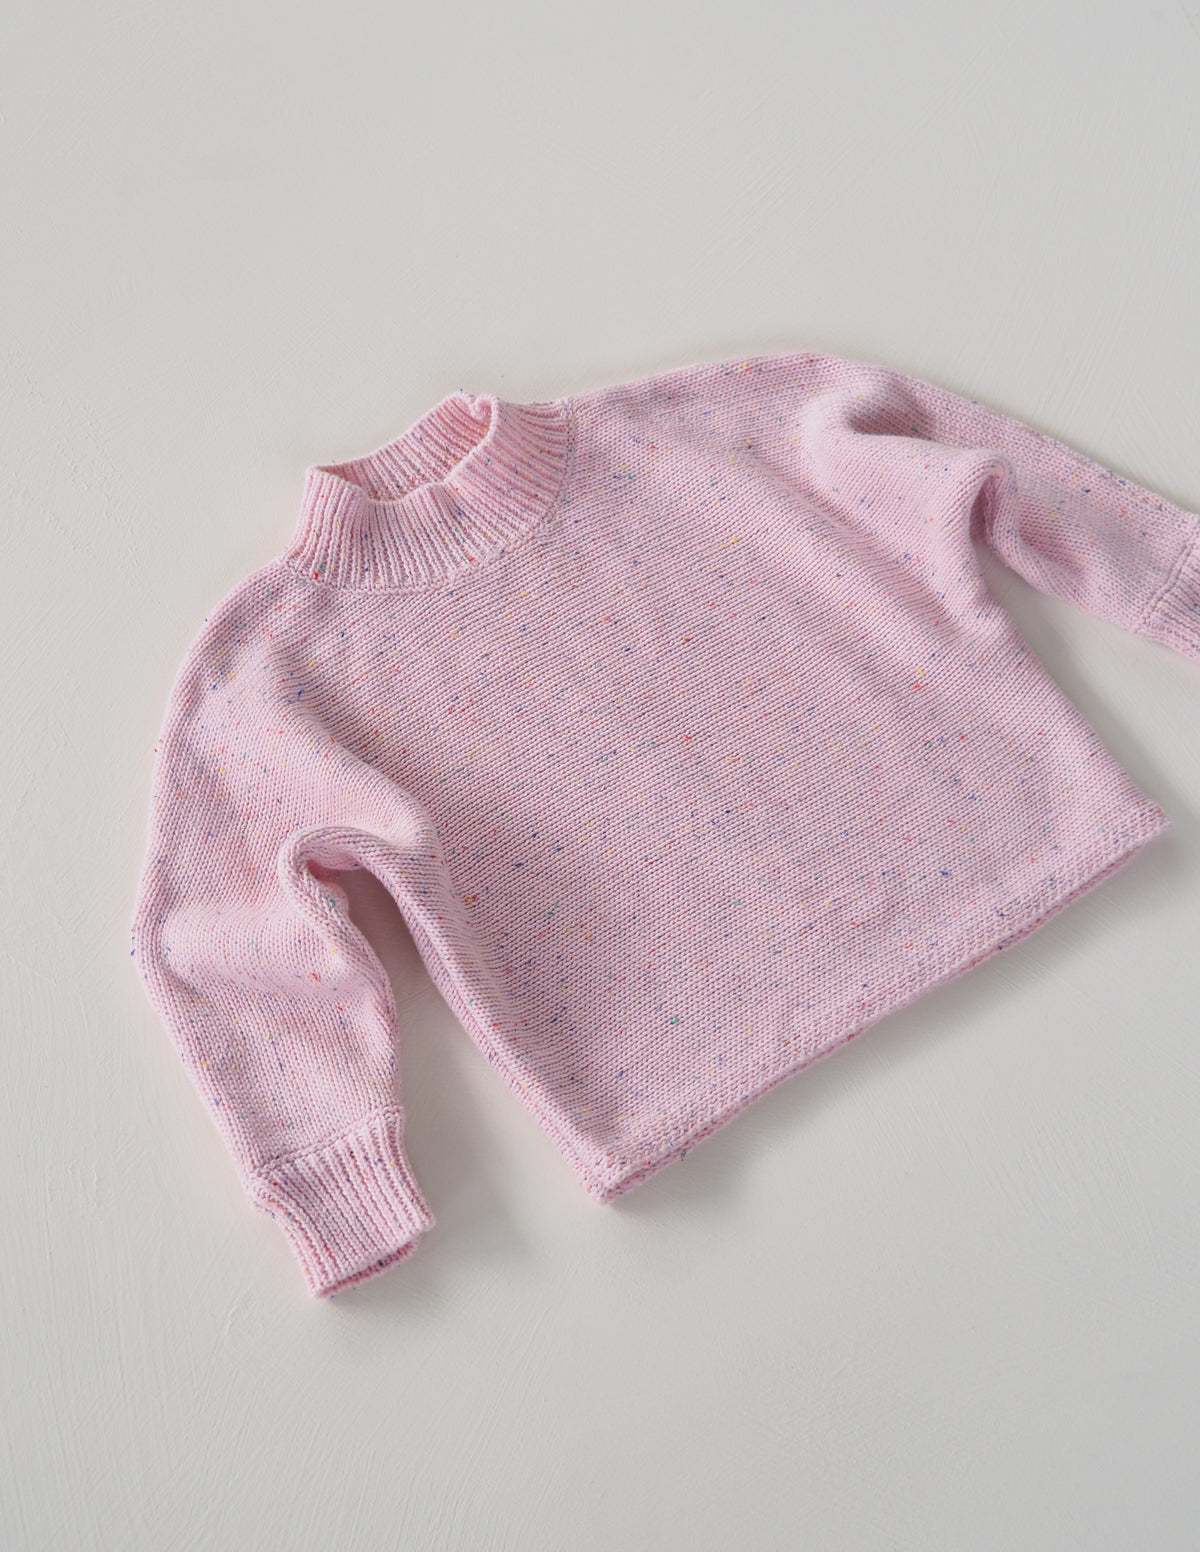 The Pink Sprinkle Knit Jumper